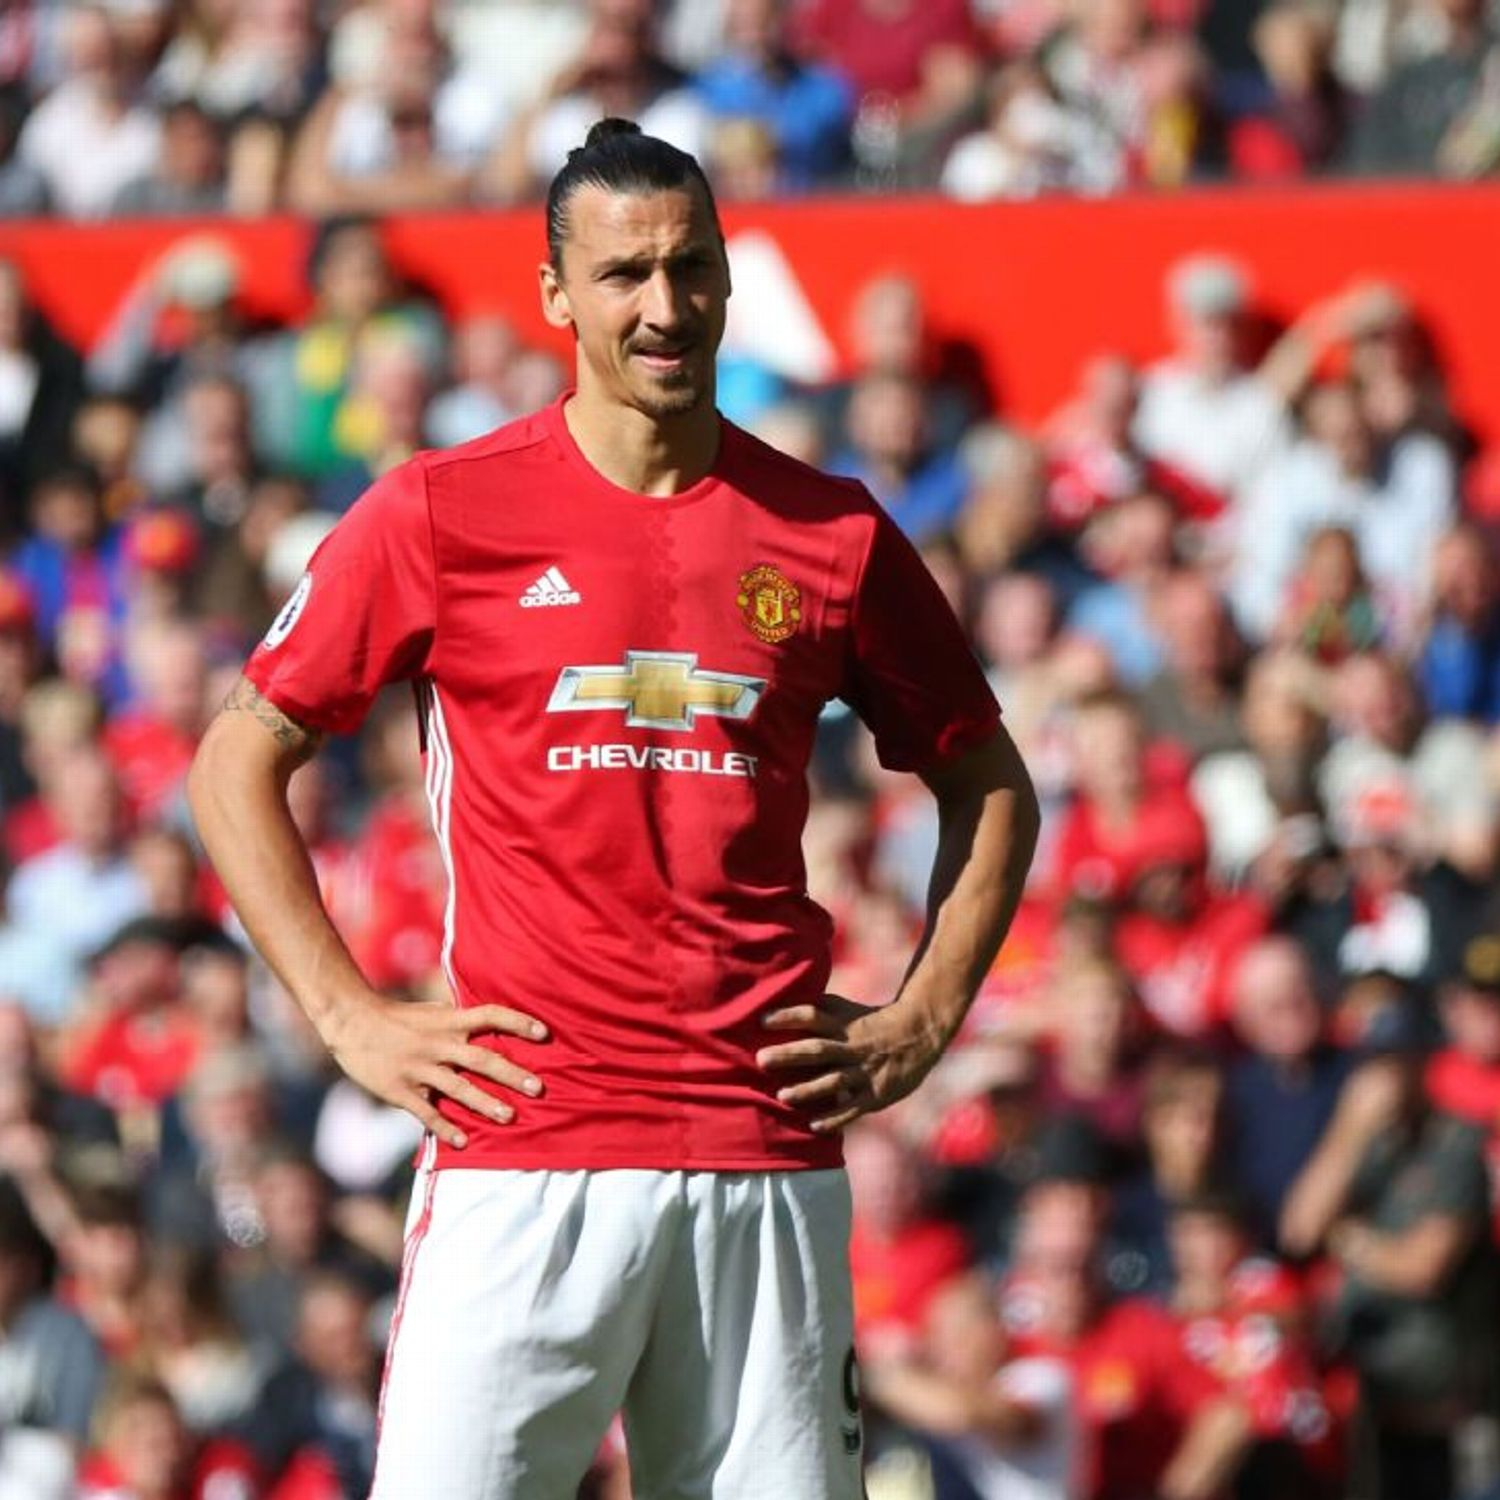 ... Ibrahimovic - Manchester United still waiting to click - ESPN FC